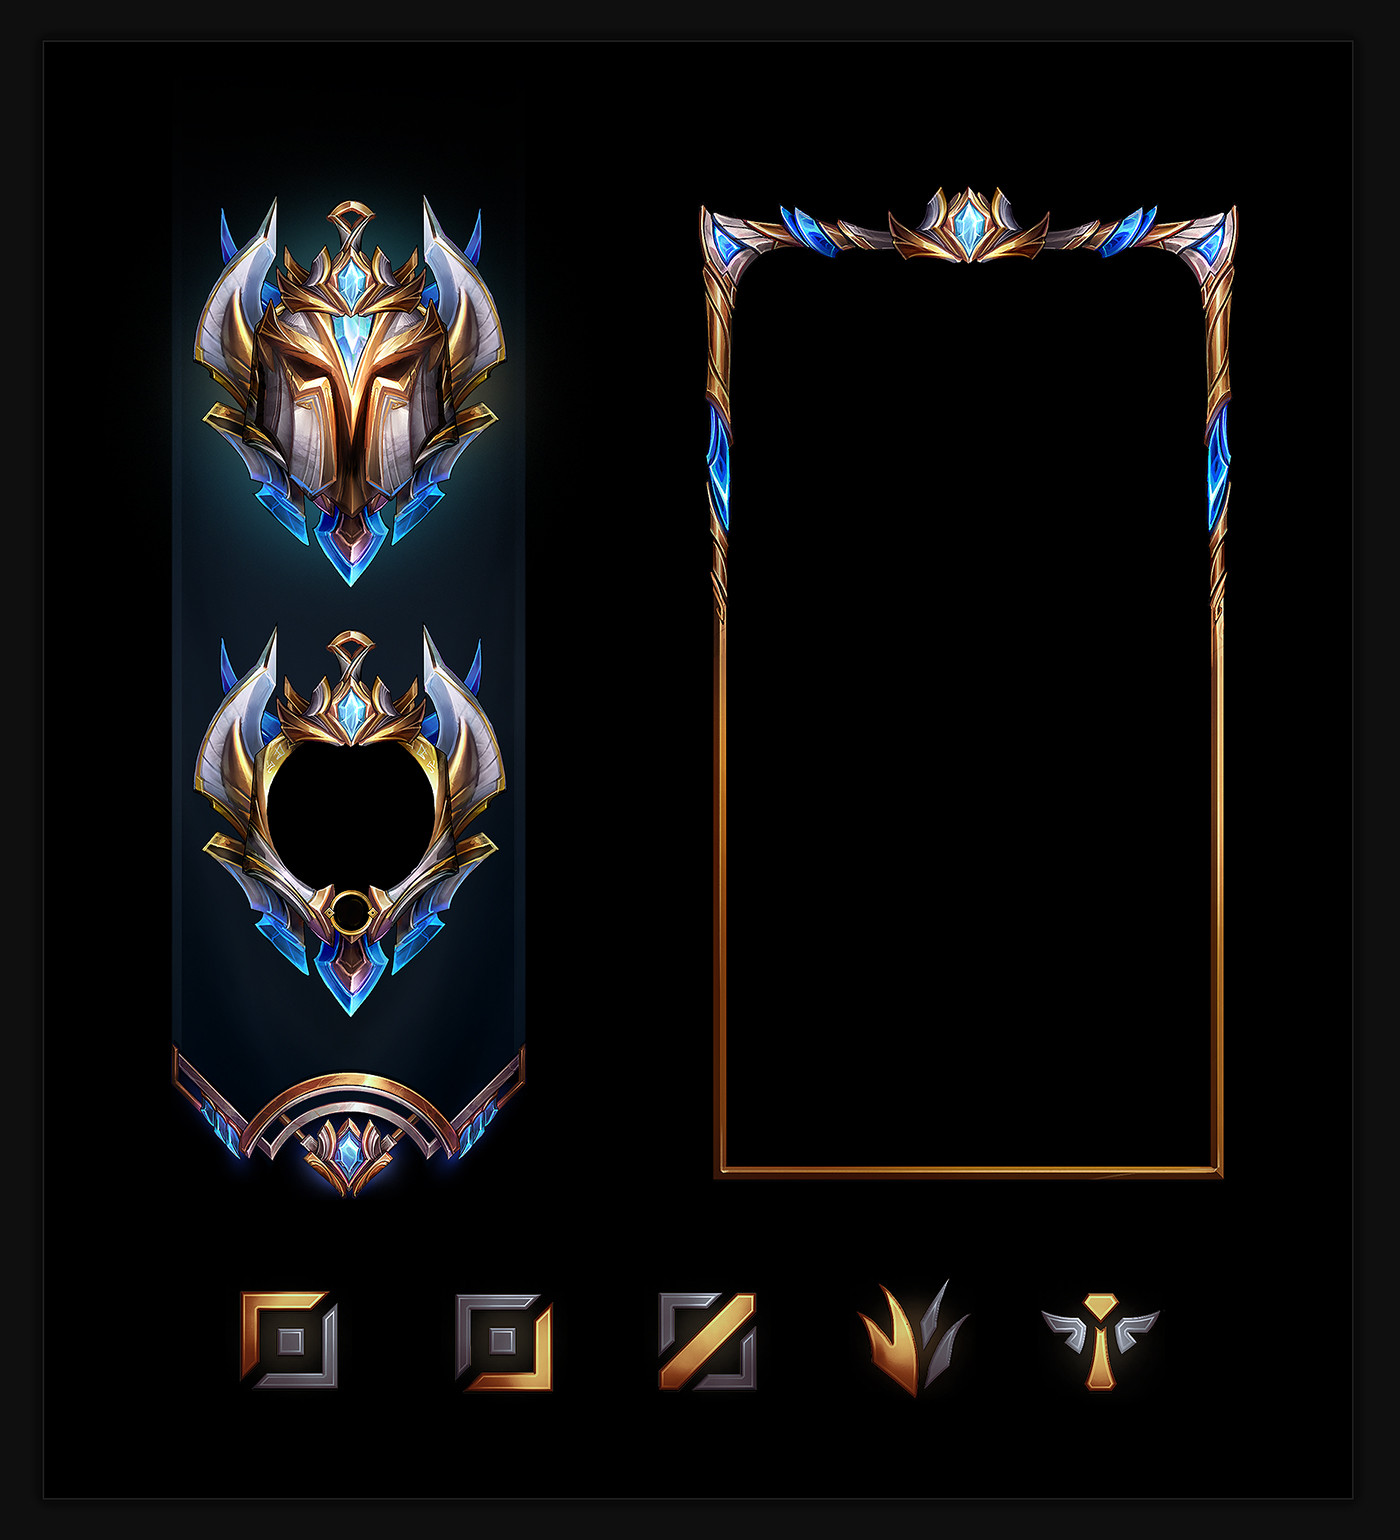 Samuel Thompson Ranked Rewards League Of Legends